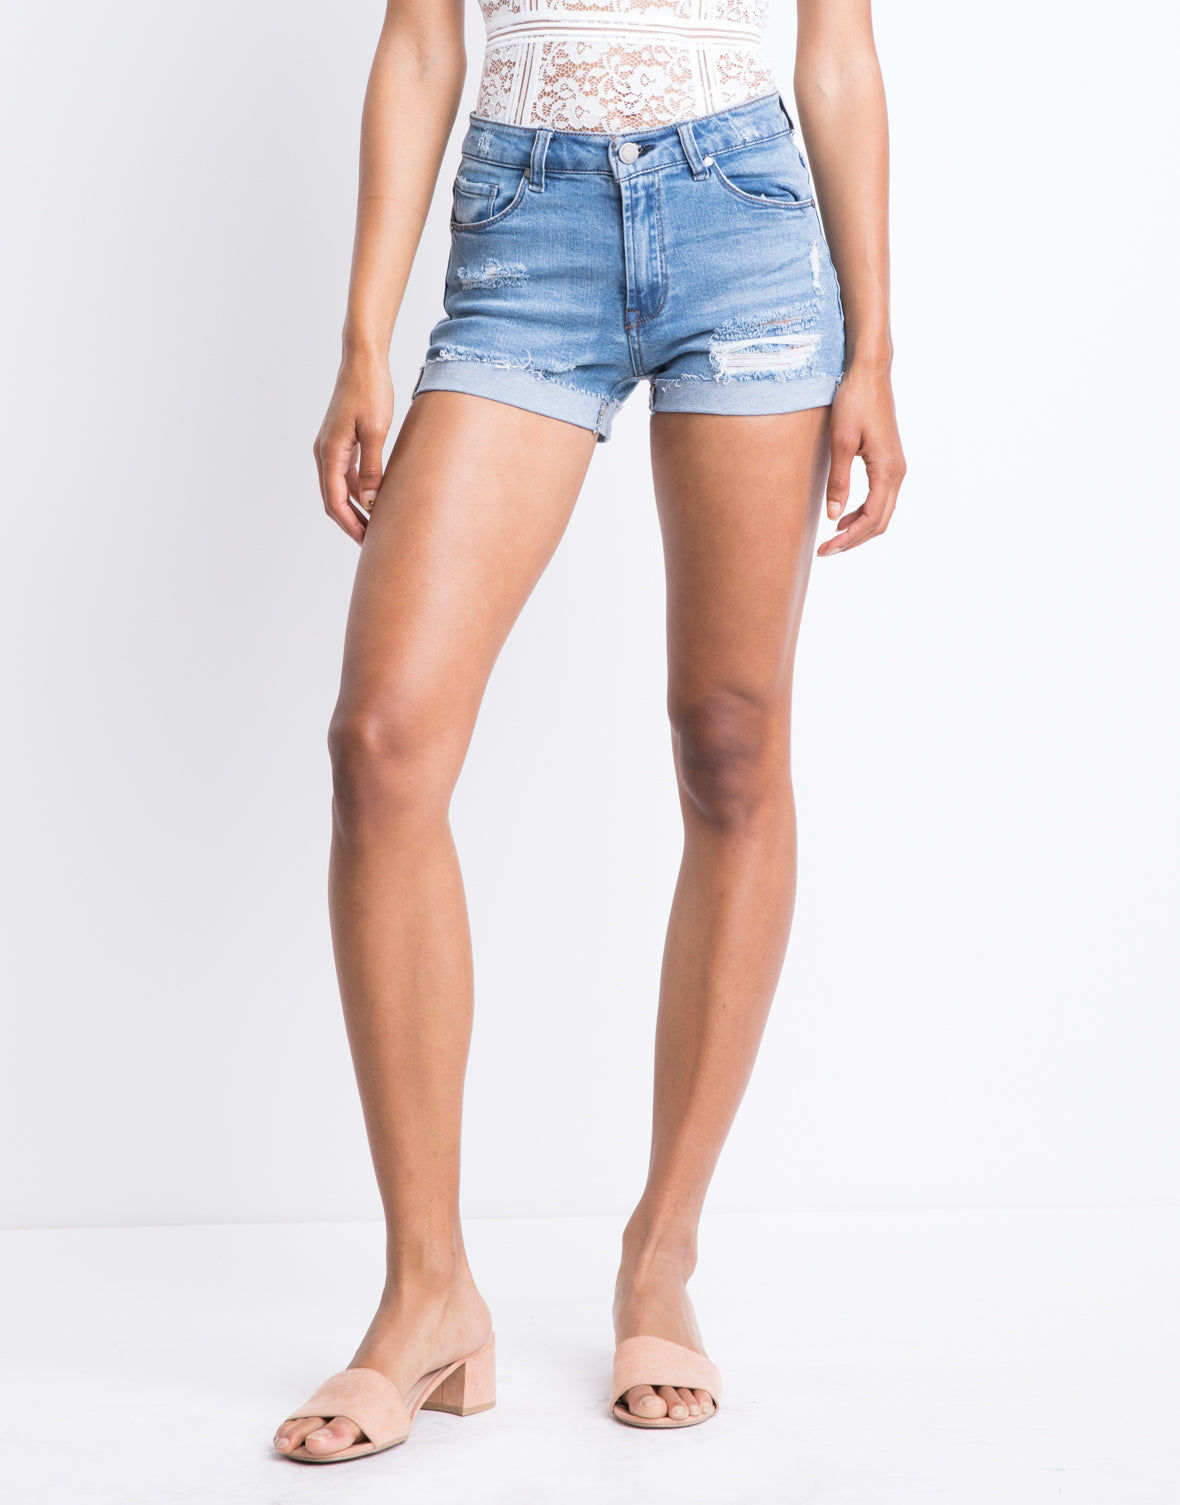 Summer Afternoon Denim Shorts